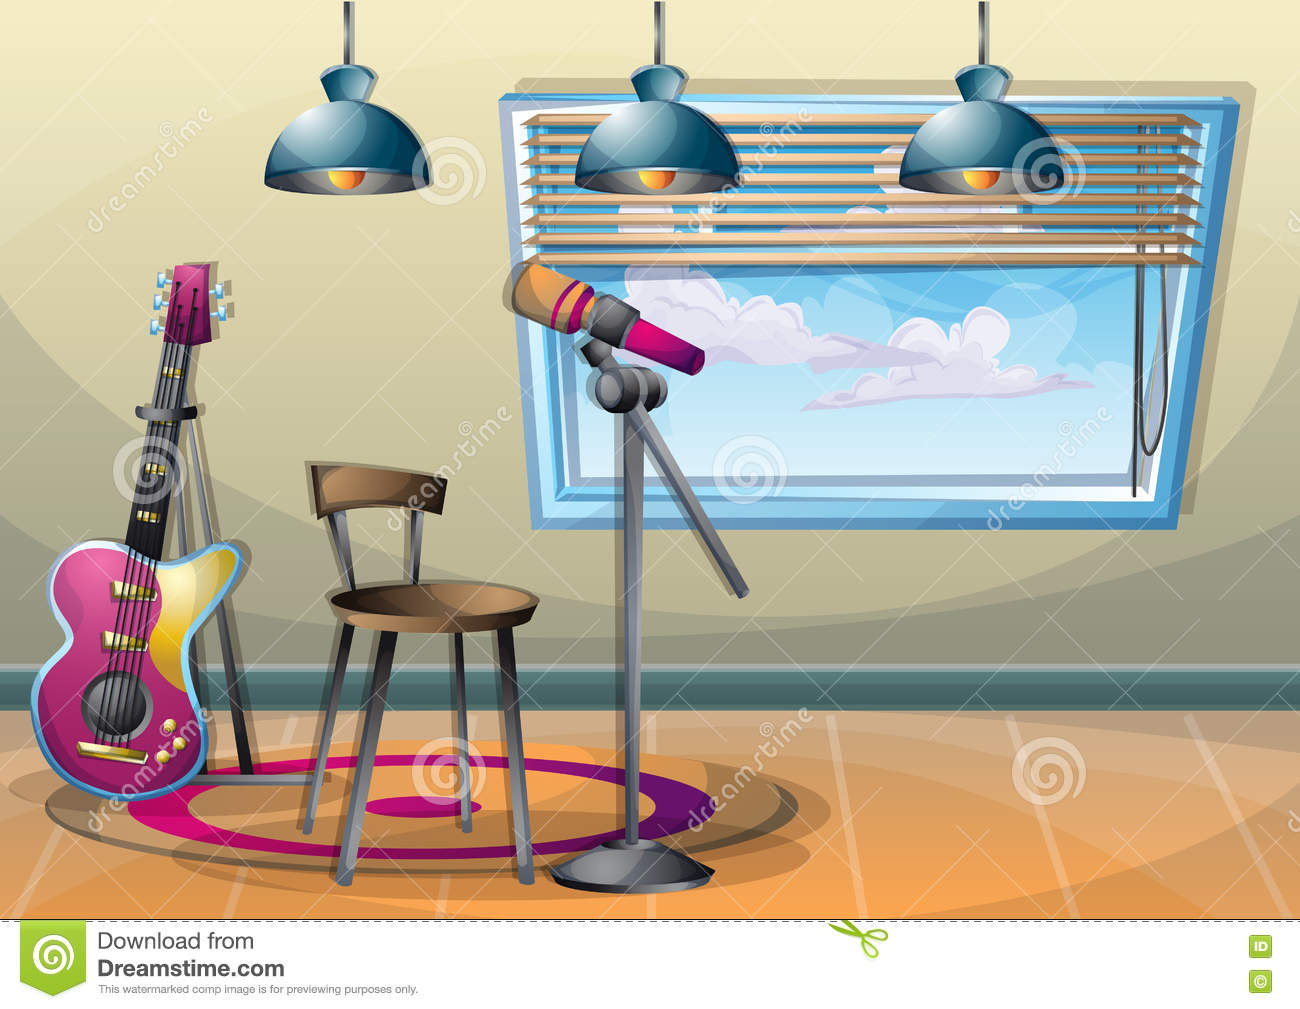 chair design icons slipcover oversized cartoon vector illustration interior music room with separated layers stock - image: 77445667